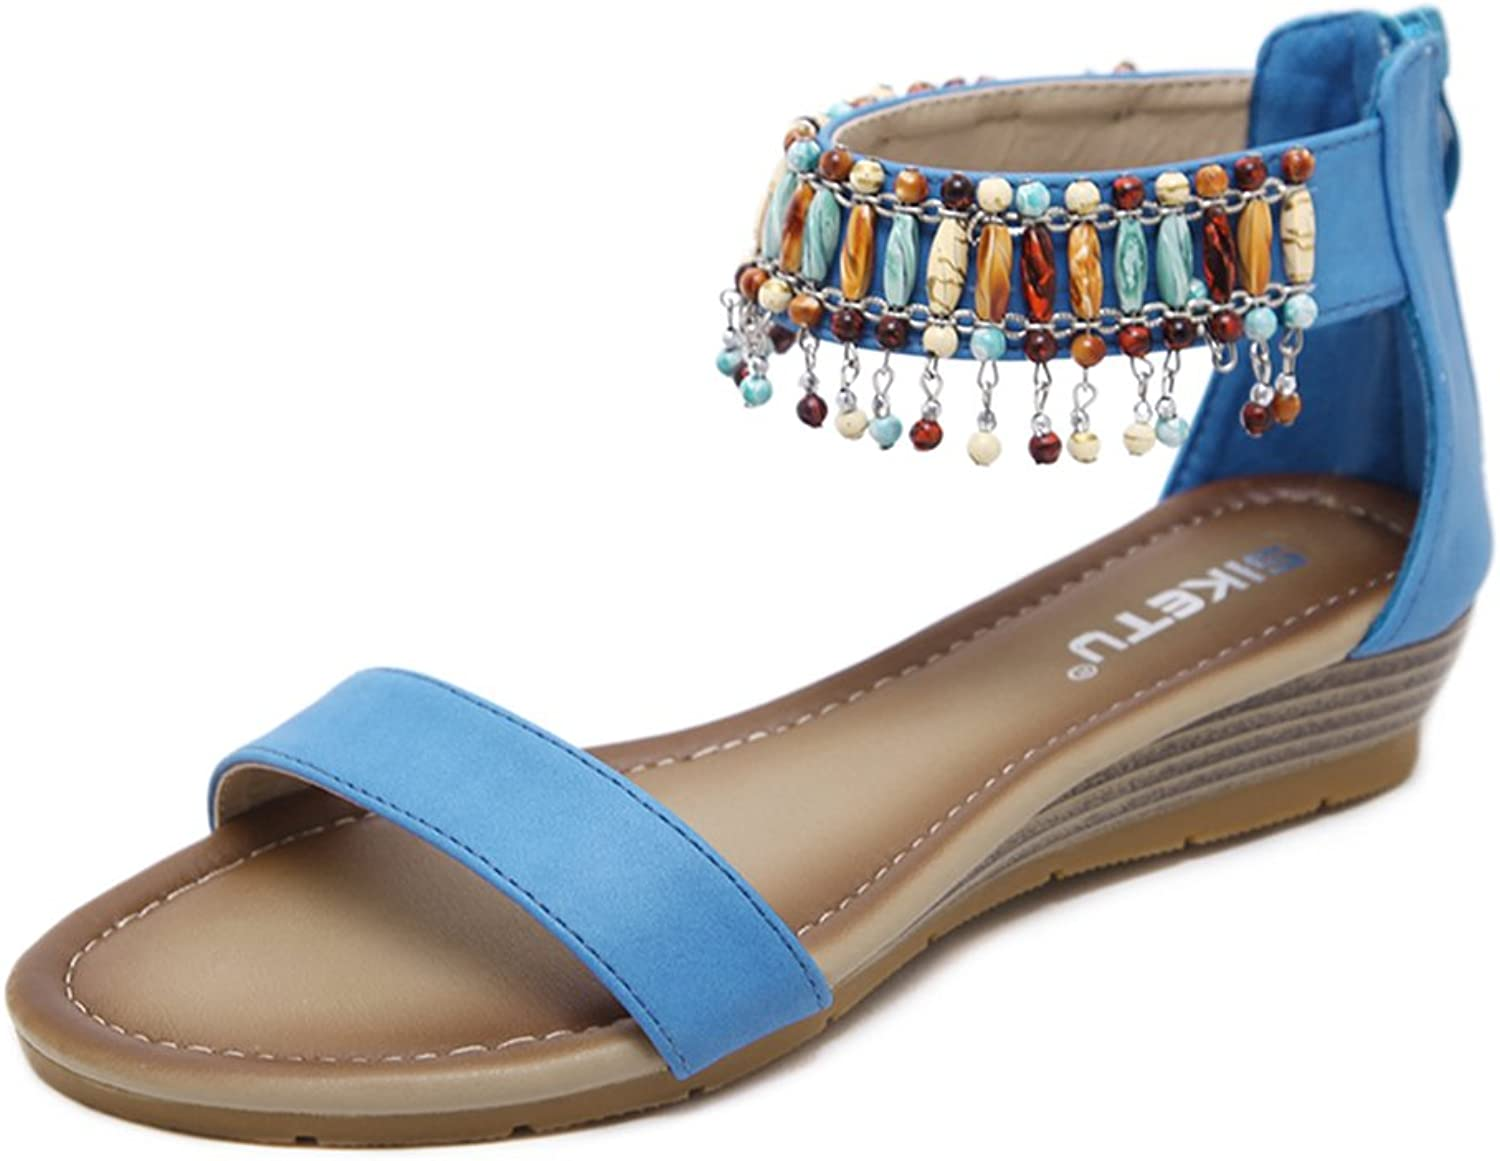 Navoku Women's Beaded Leather Zipper Outdoor Sandles Ladies Sandals